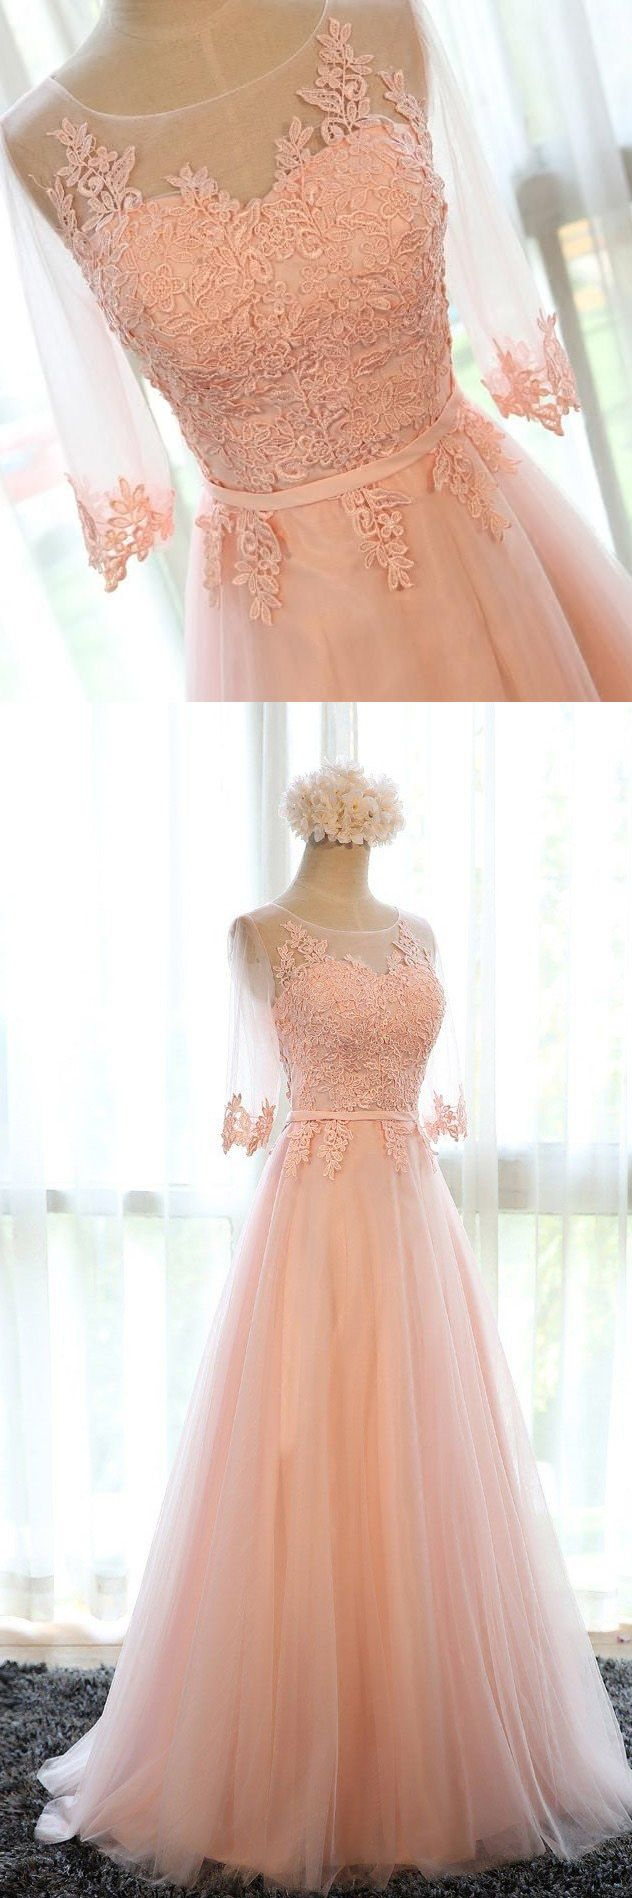 Alineprincess prom evening dresses long pink dresses with lace up